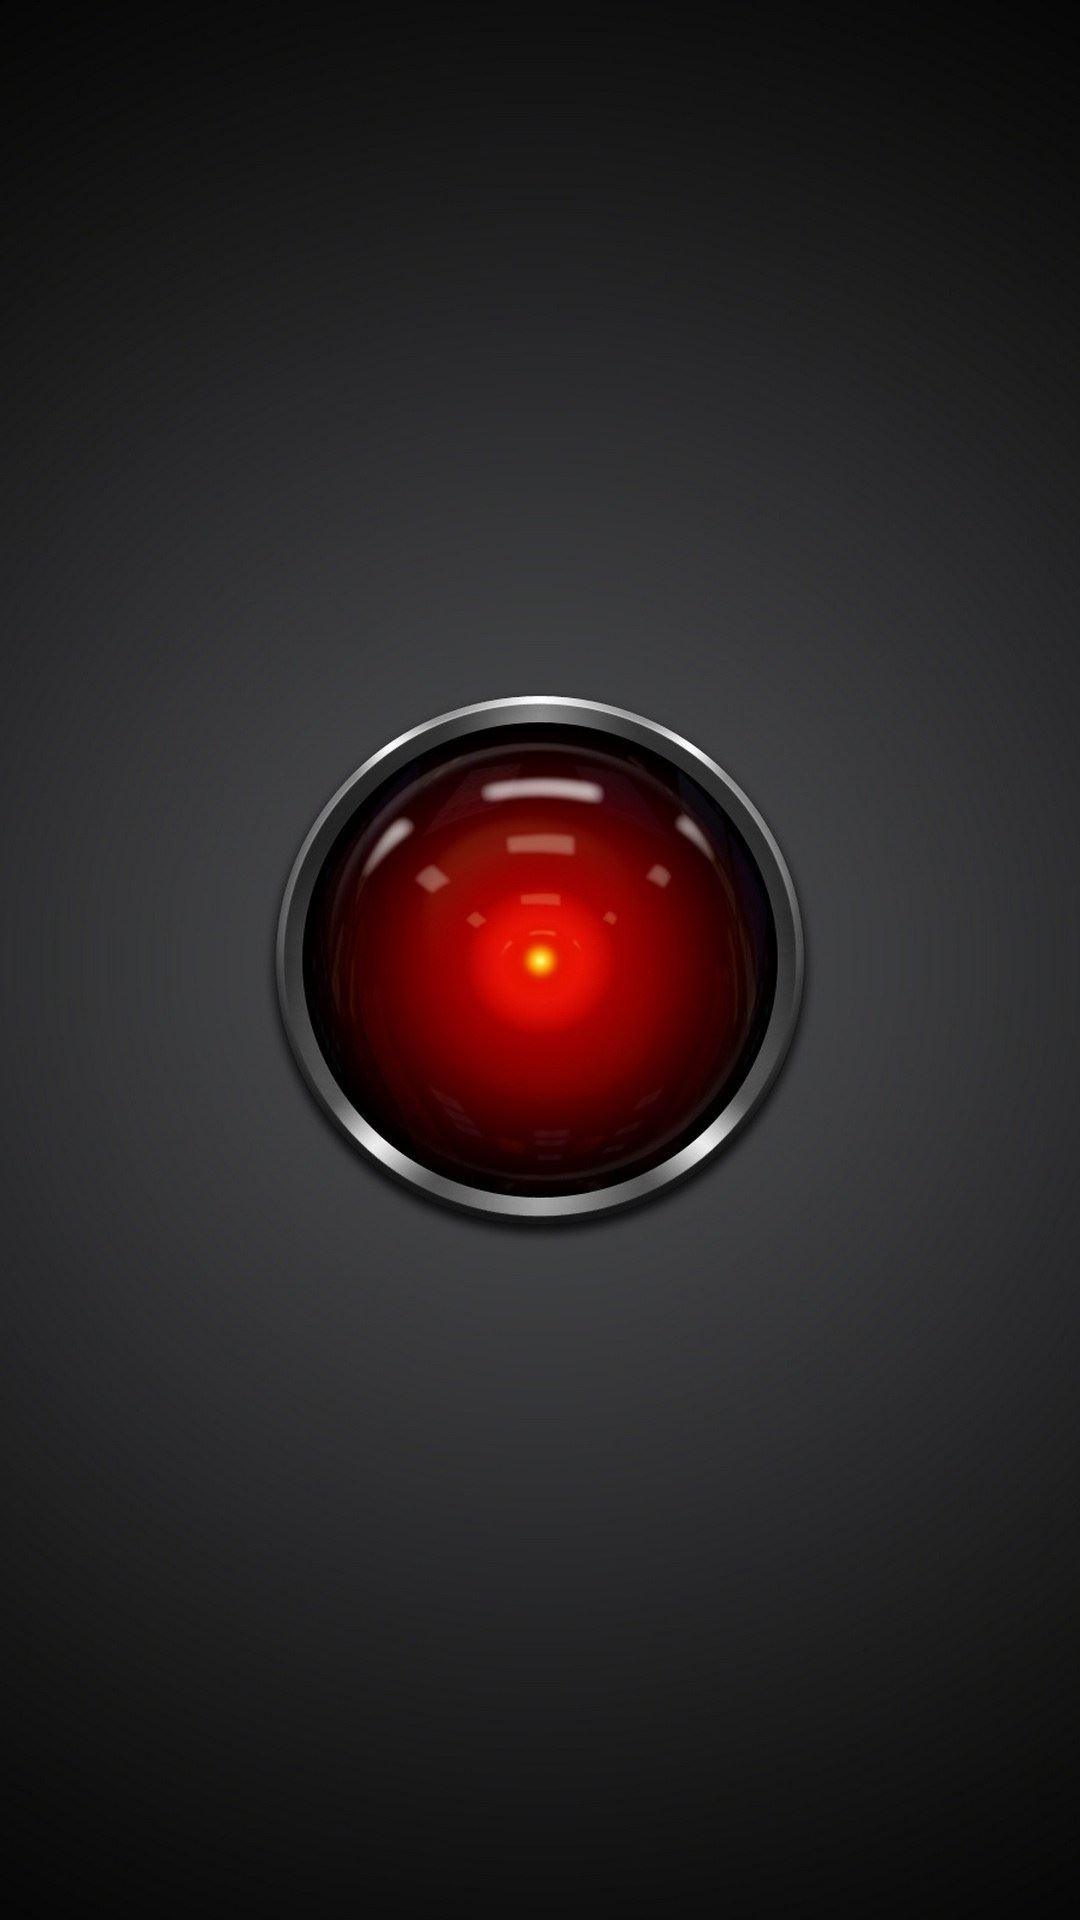 Hal 9000 android wallpaper best htc one wallpapers for The best home screen wallpaper for android